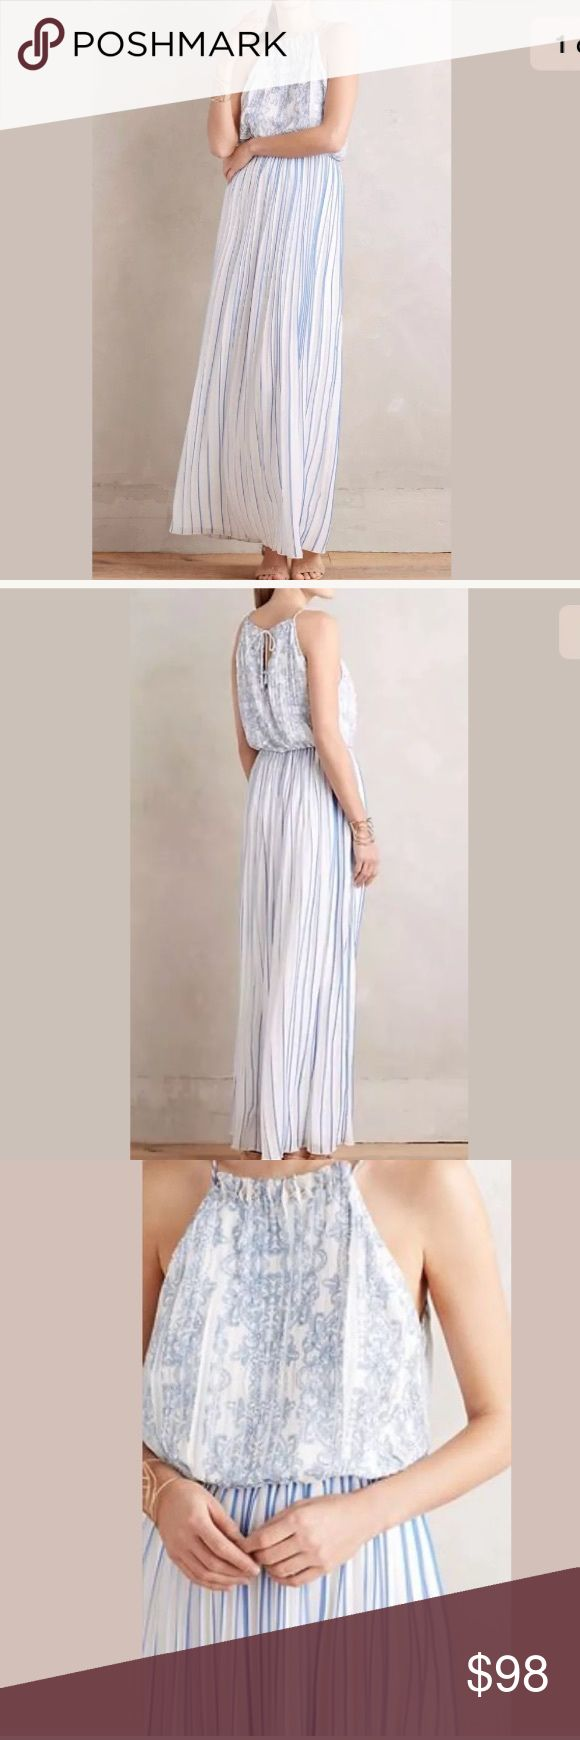 """NWT Anthropologie Livia Maxi Dress Sz M New With Tag Anthropologie Livia Maxi Dress Sz M   By Kas New York  Polyester; polyester lining Halter neck maxi silhouette Tie closure Hand wash length: 60"""" Model is 5'10"""" Anthropologie Dresses"""